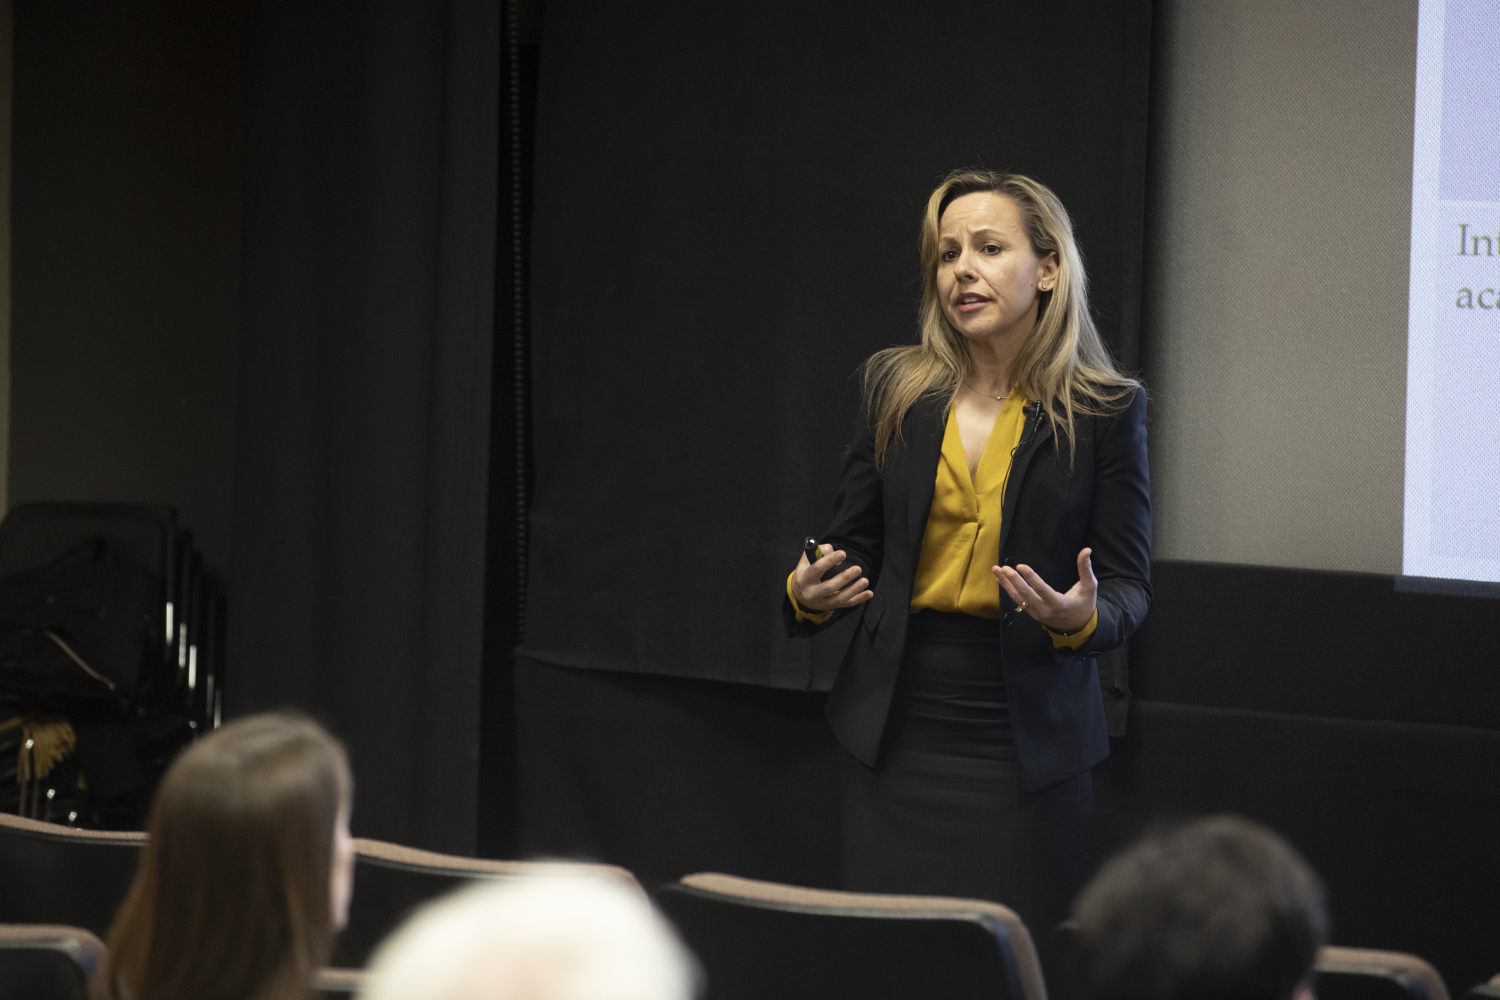 Montse Fuentes speaks during the provost forum on Thursday, February 7, 2019. This is the third and final story for the search.